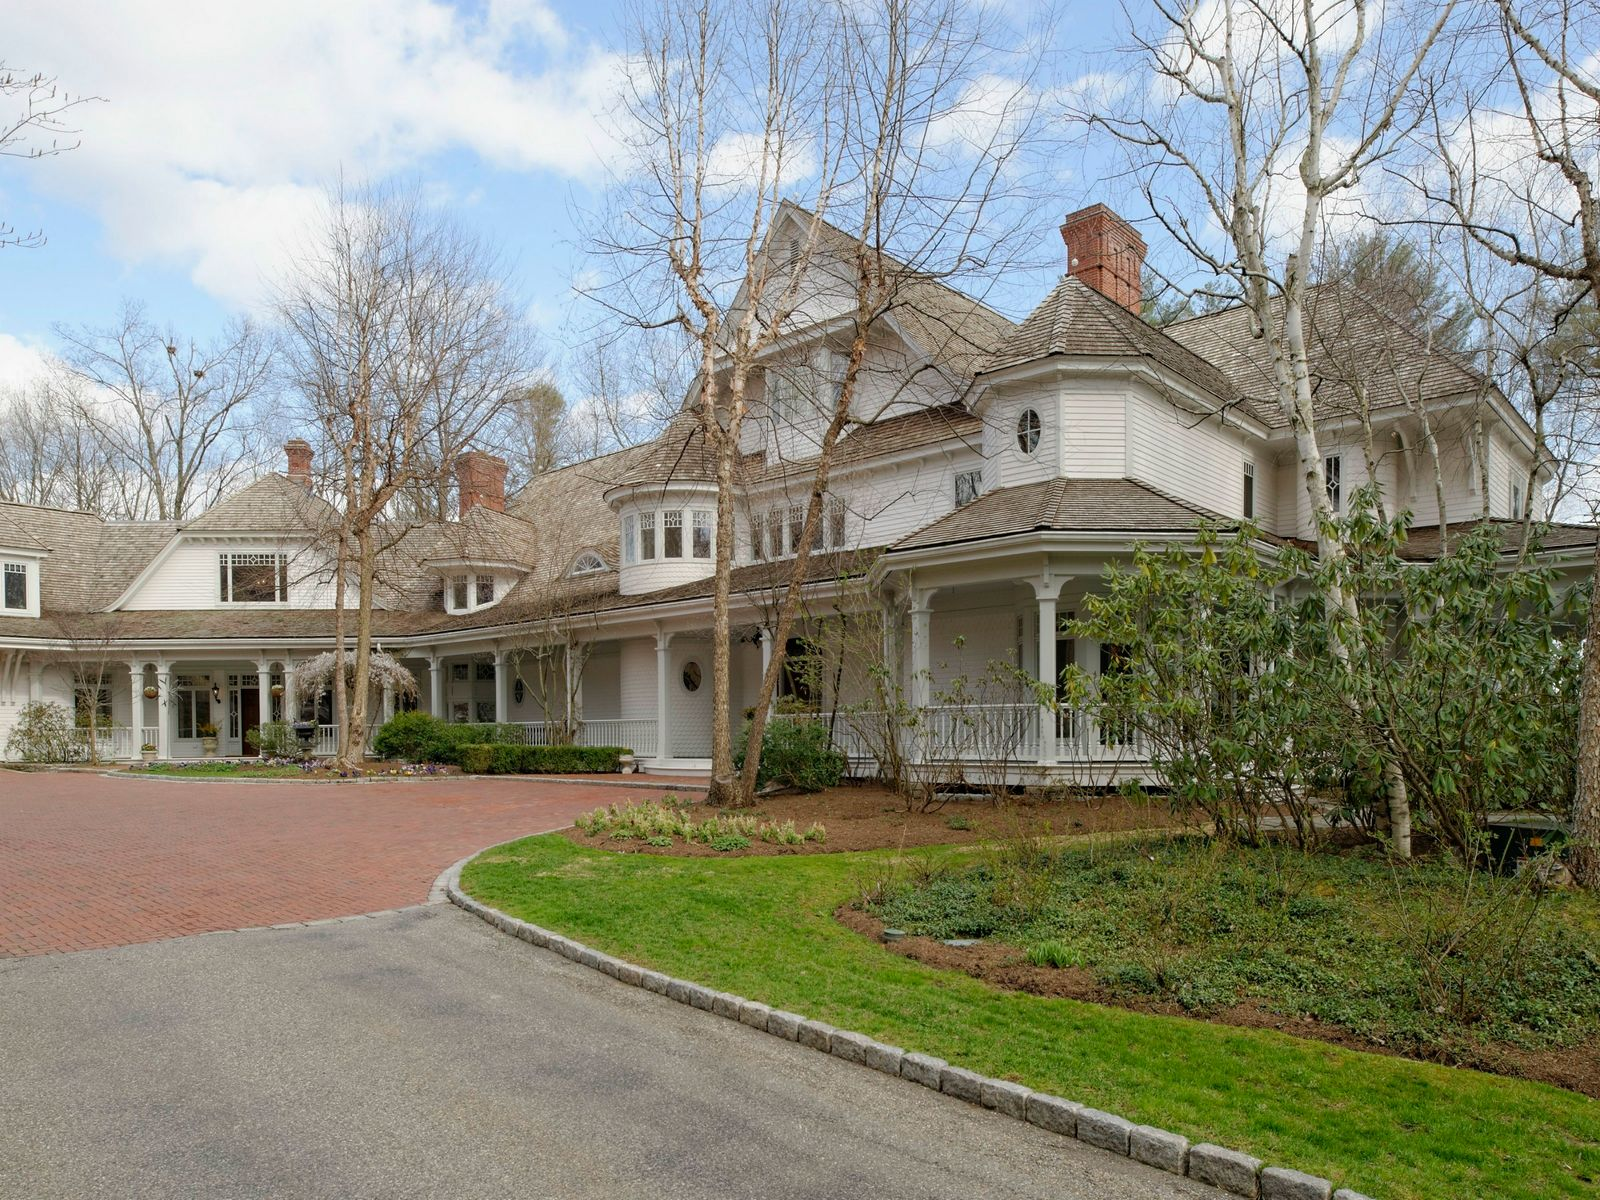 Lakefront Compound, Greenwich CT Single Family Home - Greenwich Real Estate